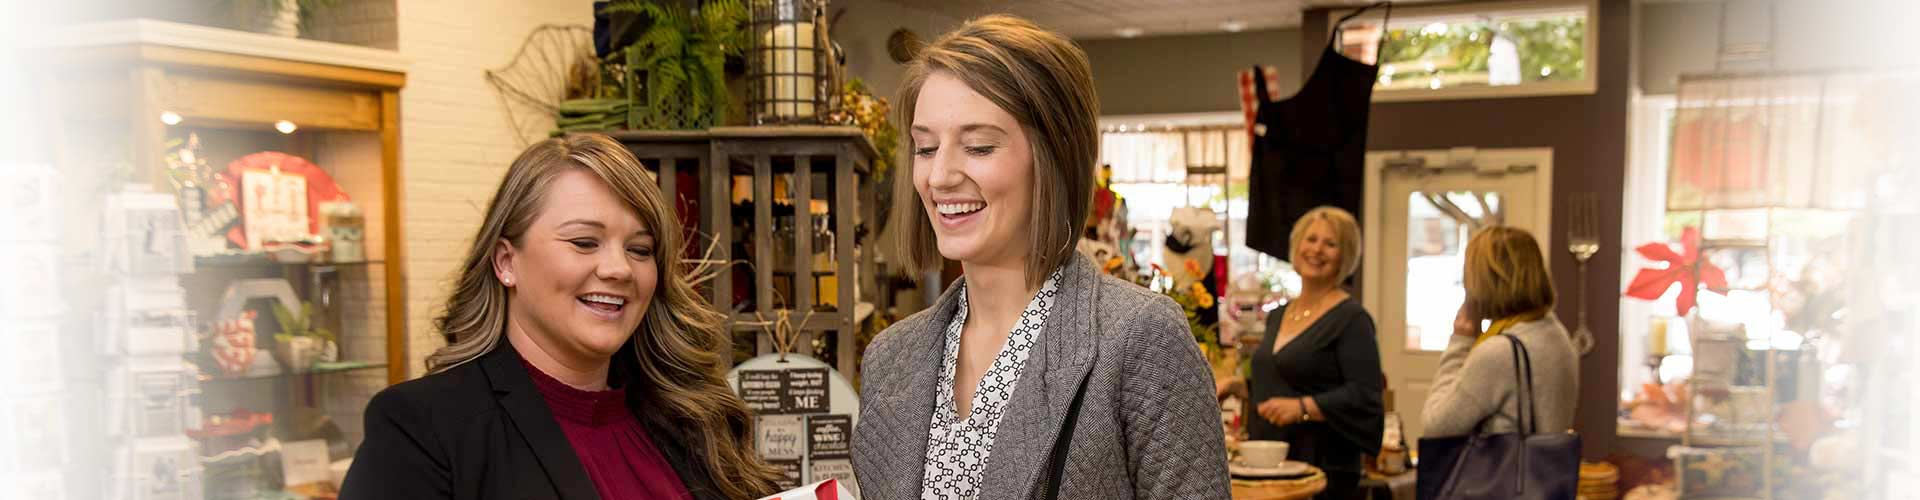 2020 Women's History Month Events in DSM